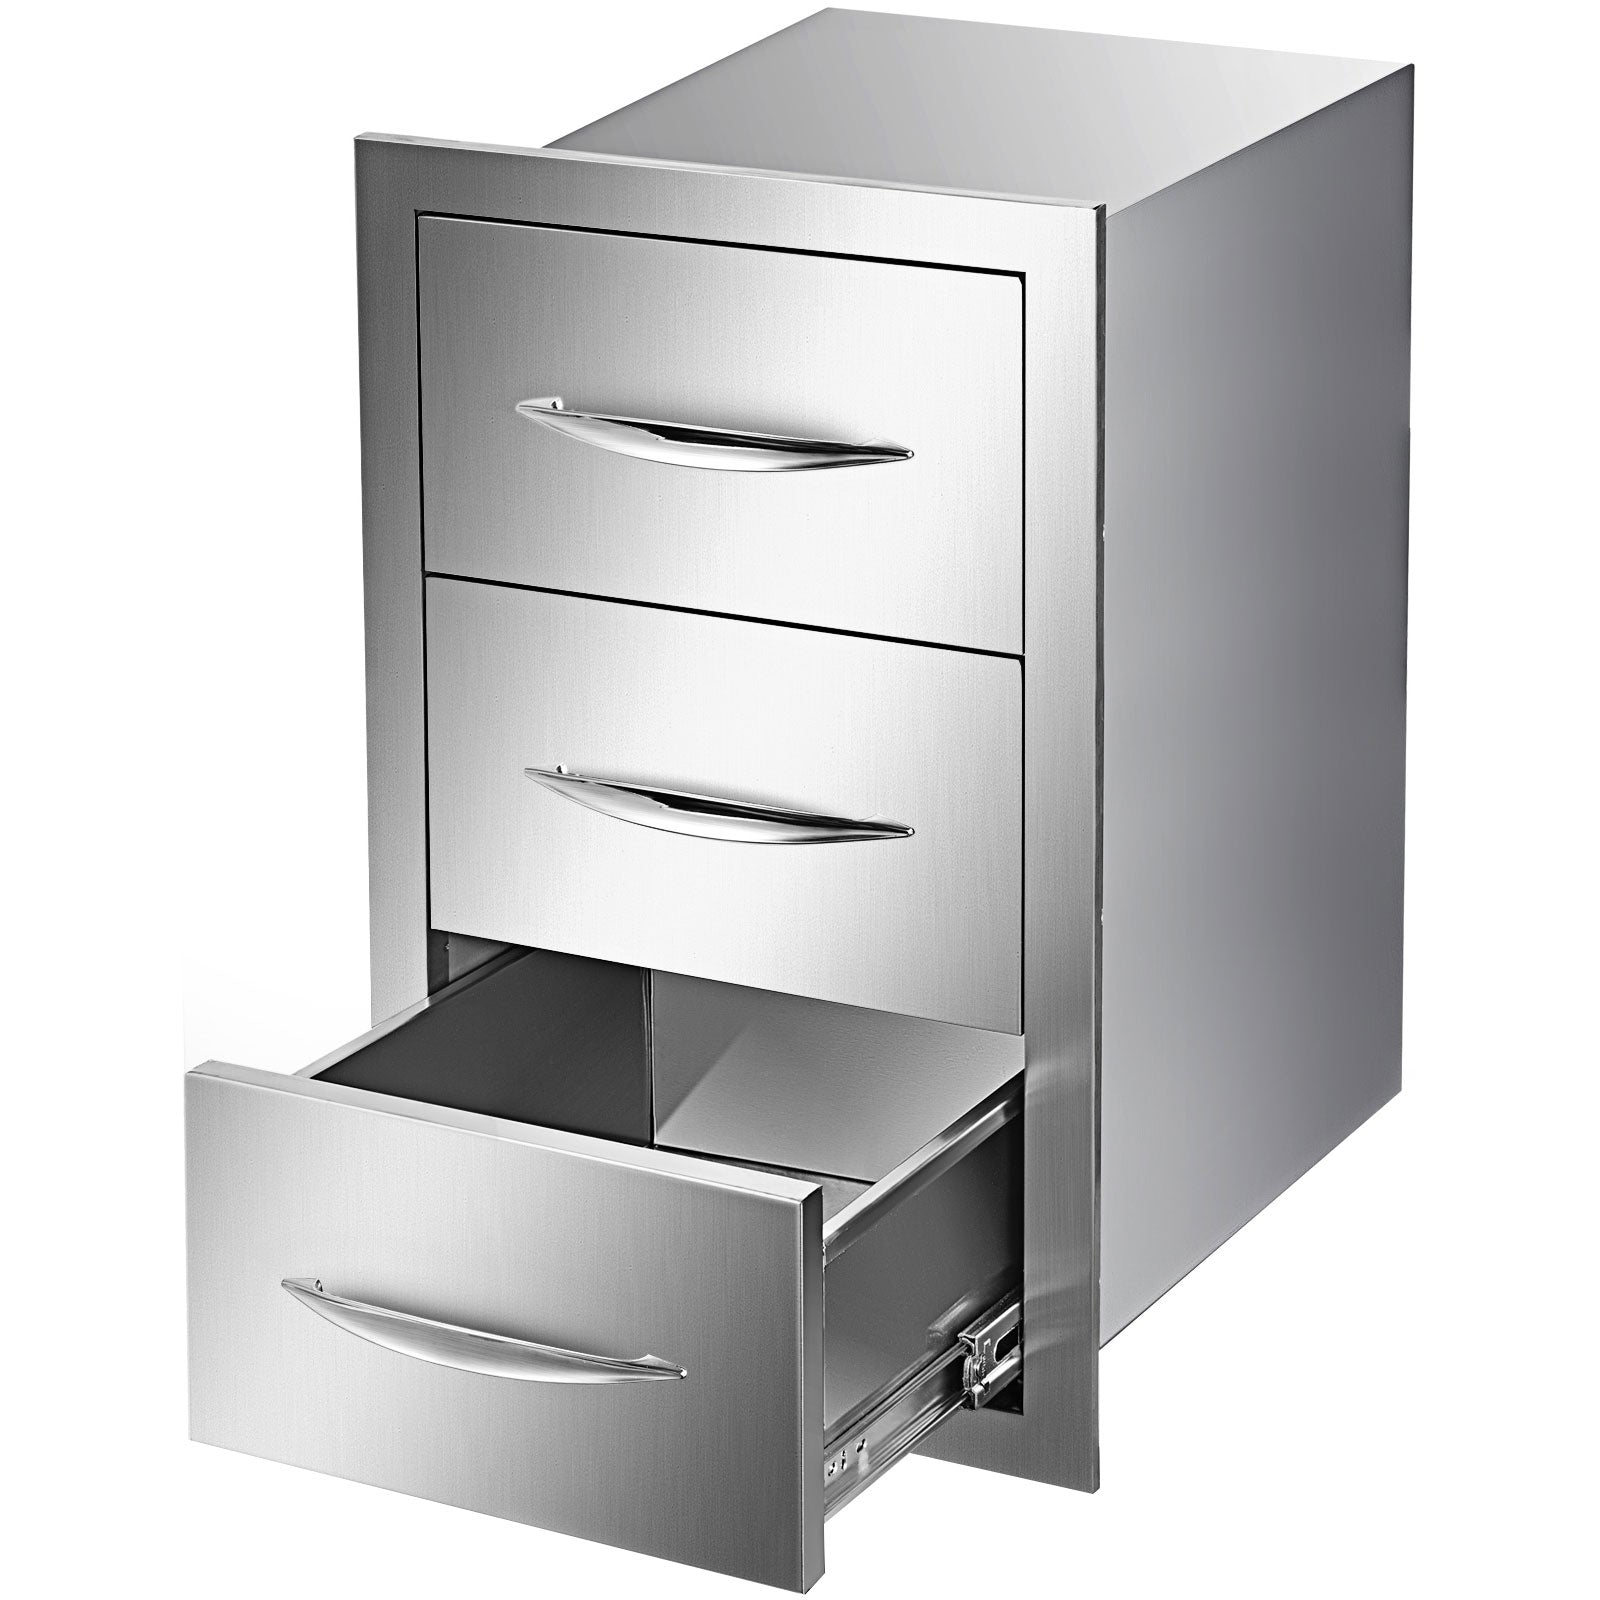 "Triple Drawer Outdoor Kitchen Bbq Island Stainless Steel 17.7""w X 20.5""h"